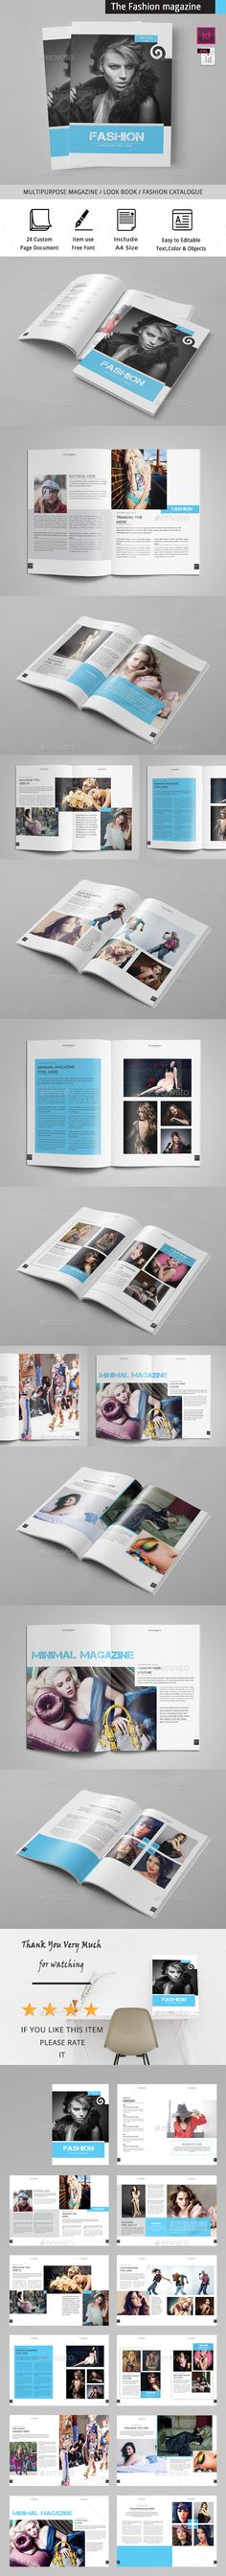 The Fashion Magazine Design Template - Magazines Print Design Template InDesign INDD. Download here: https://graphicriver.net/item/the-fashion/19414483?ref=yinkira